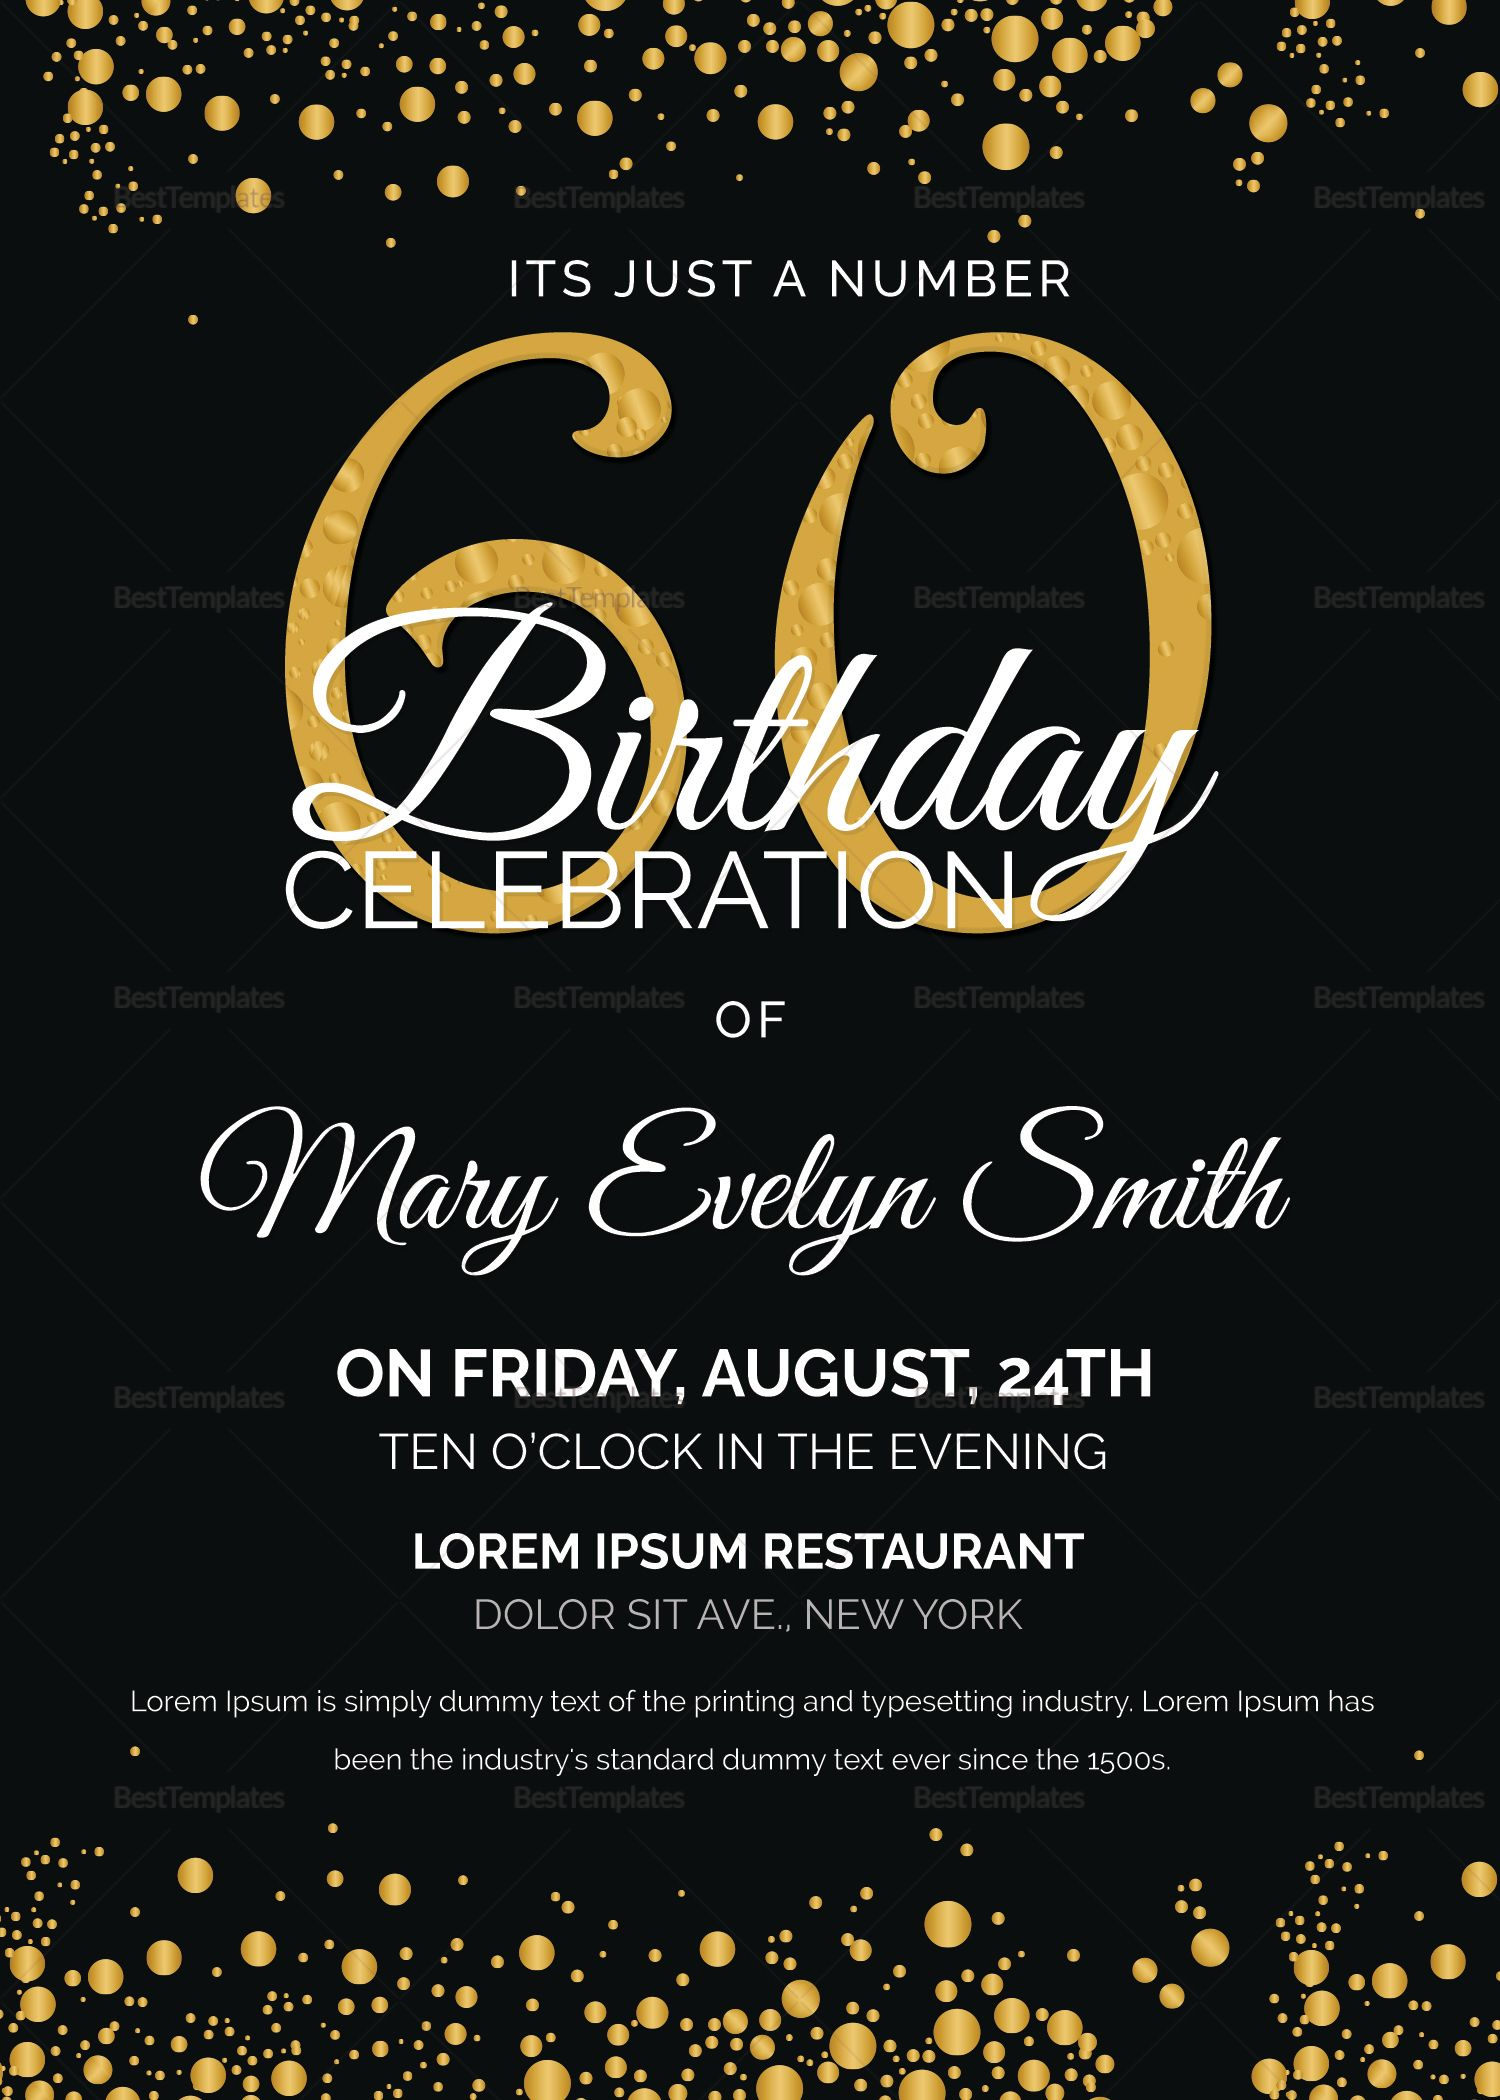 Black And Gold 60th Birthday Party Invitation Template 60th Birthday Party Invitations 60th Birthday Invitations Party Invite Template Free 60th birthday invitations template